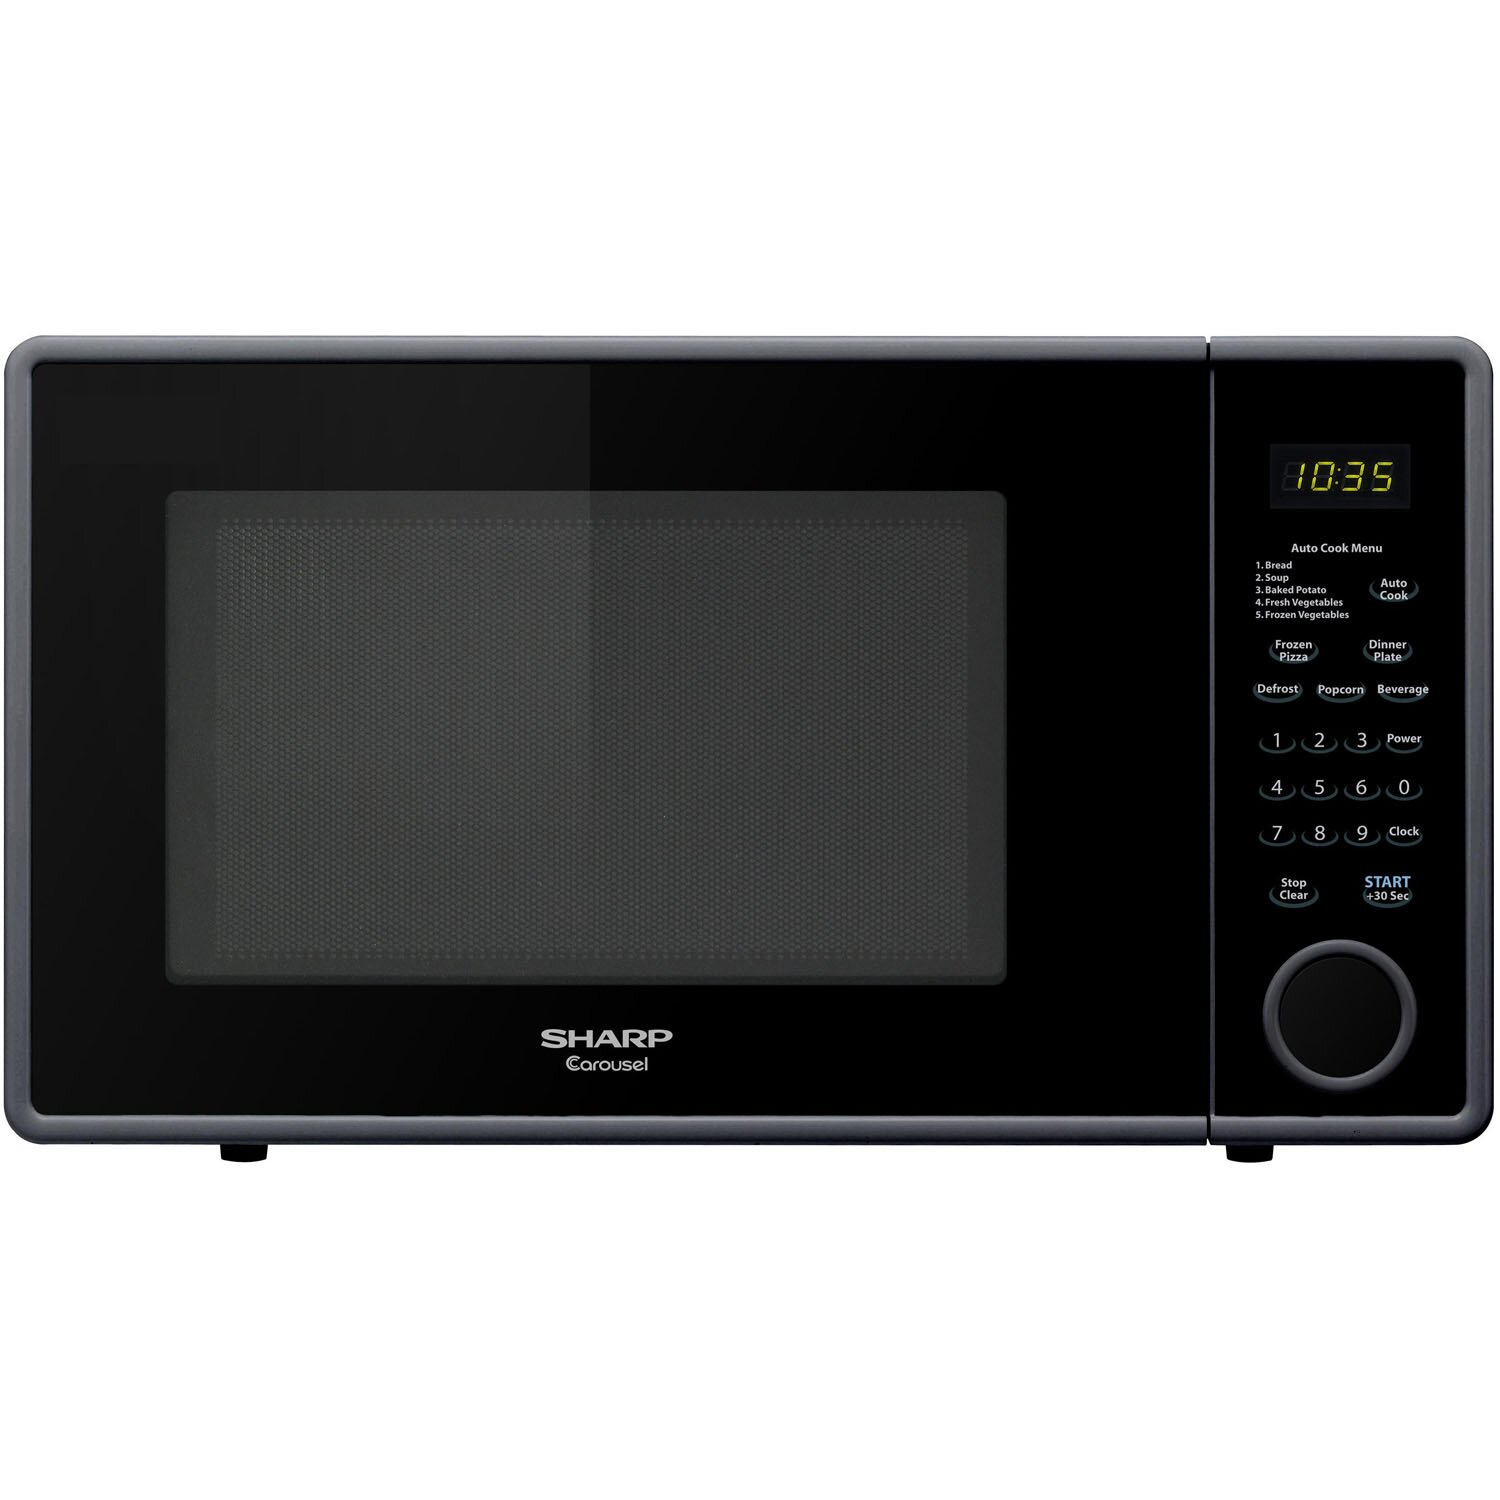 Sharp 11 Cu Ft 1000W Countertop Microwave amp Reviews  : Sharp 11 Cu Ft 1000W Countertop Microwave R 309Y from www.wayfair.com size 1500 x 1500 jpeg 134kB